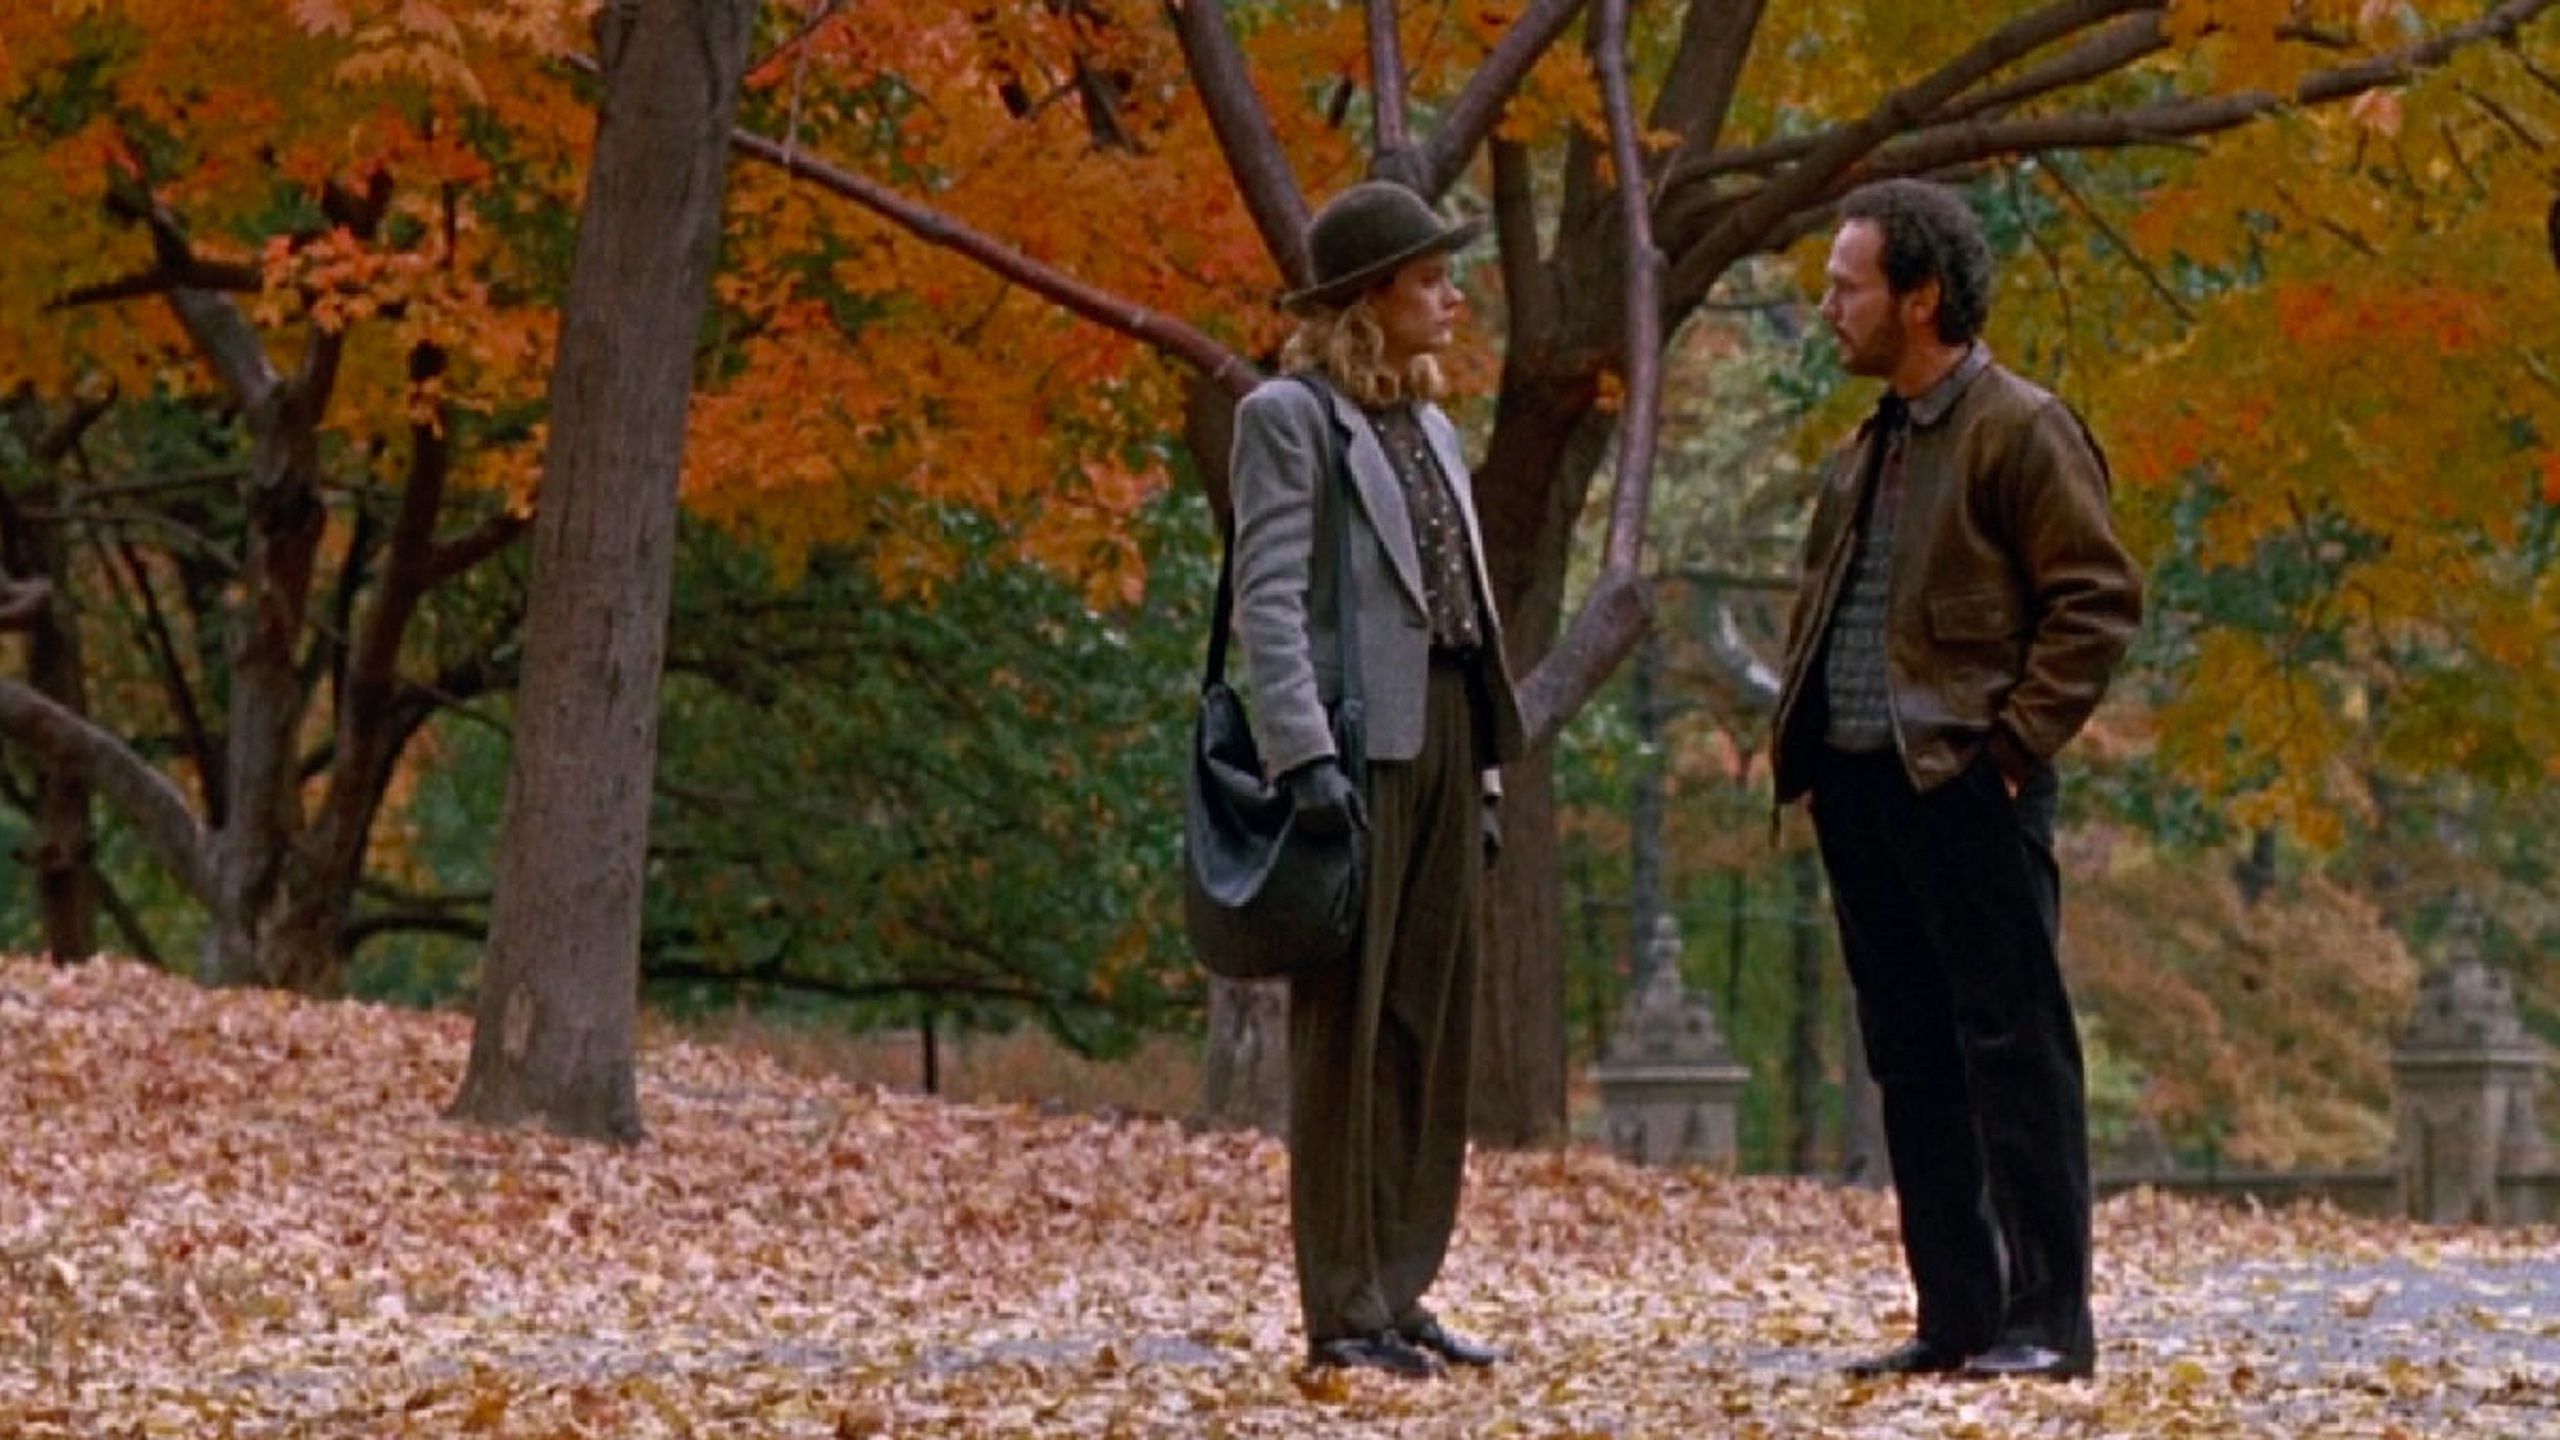 When Harry met Sally 1989 autumn in the Central Park NYC